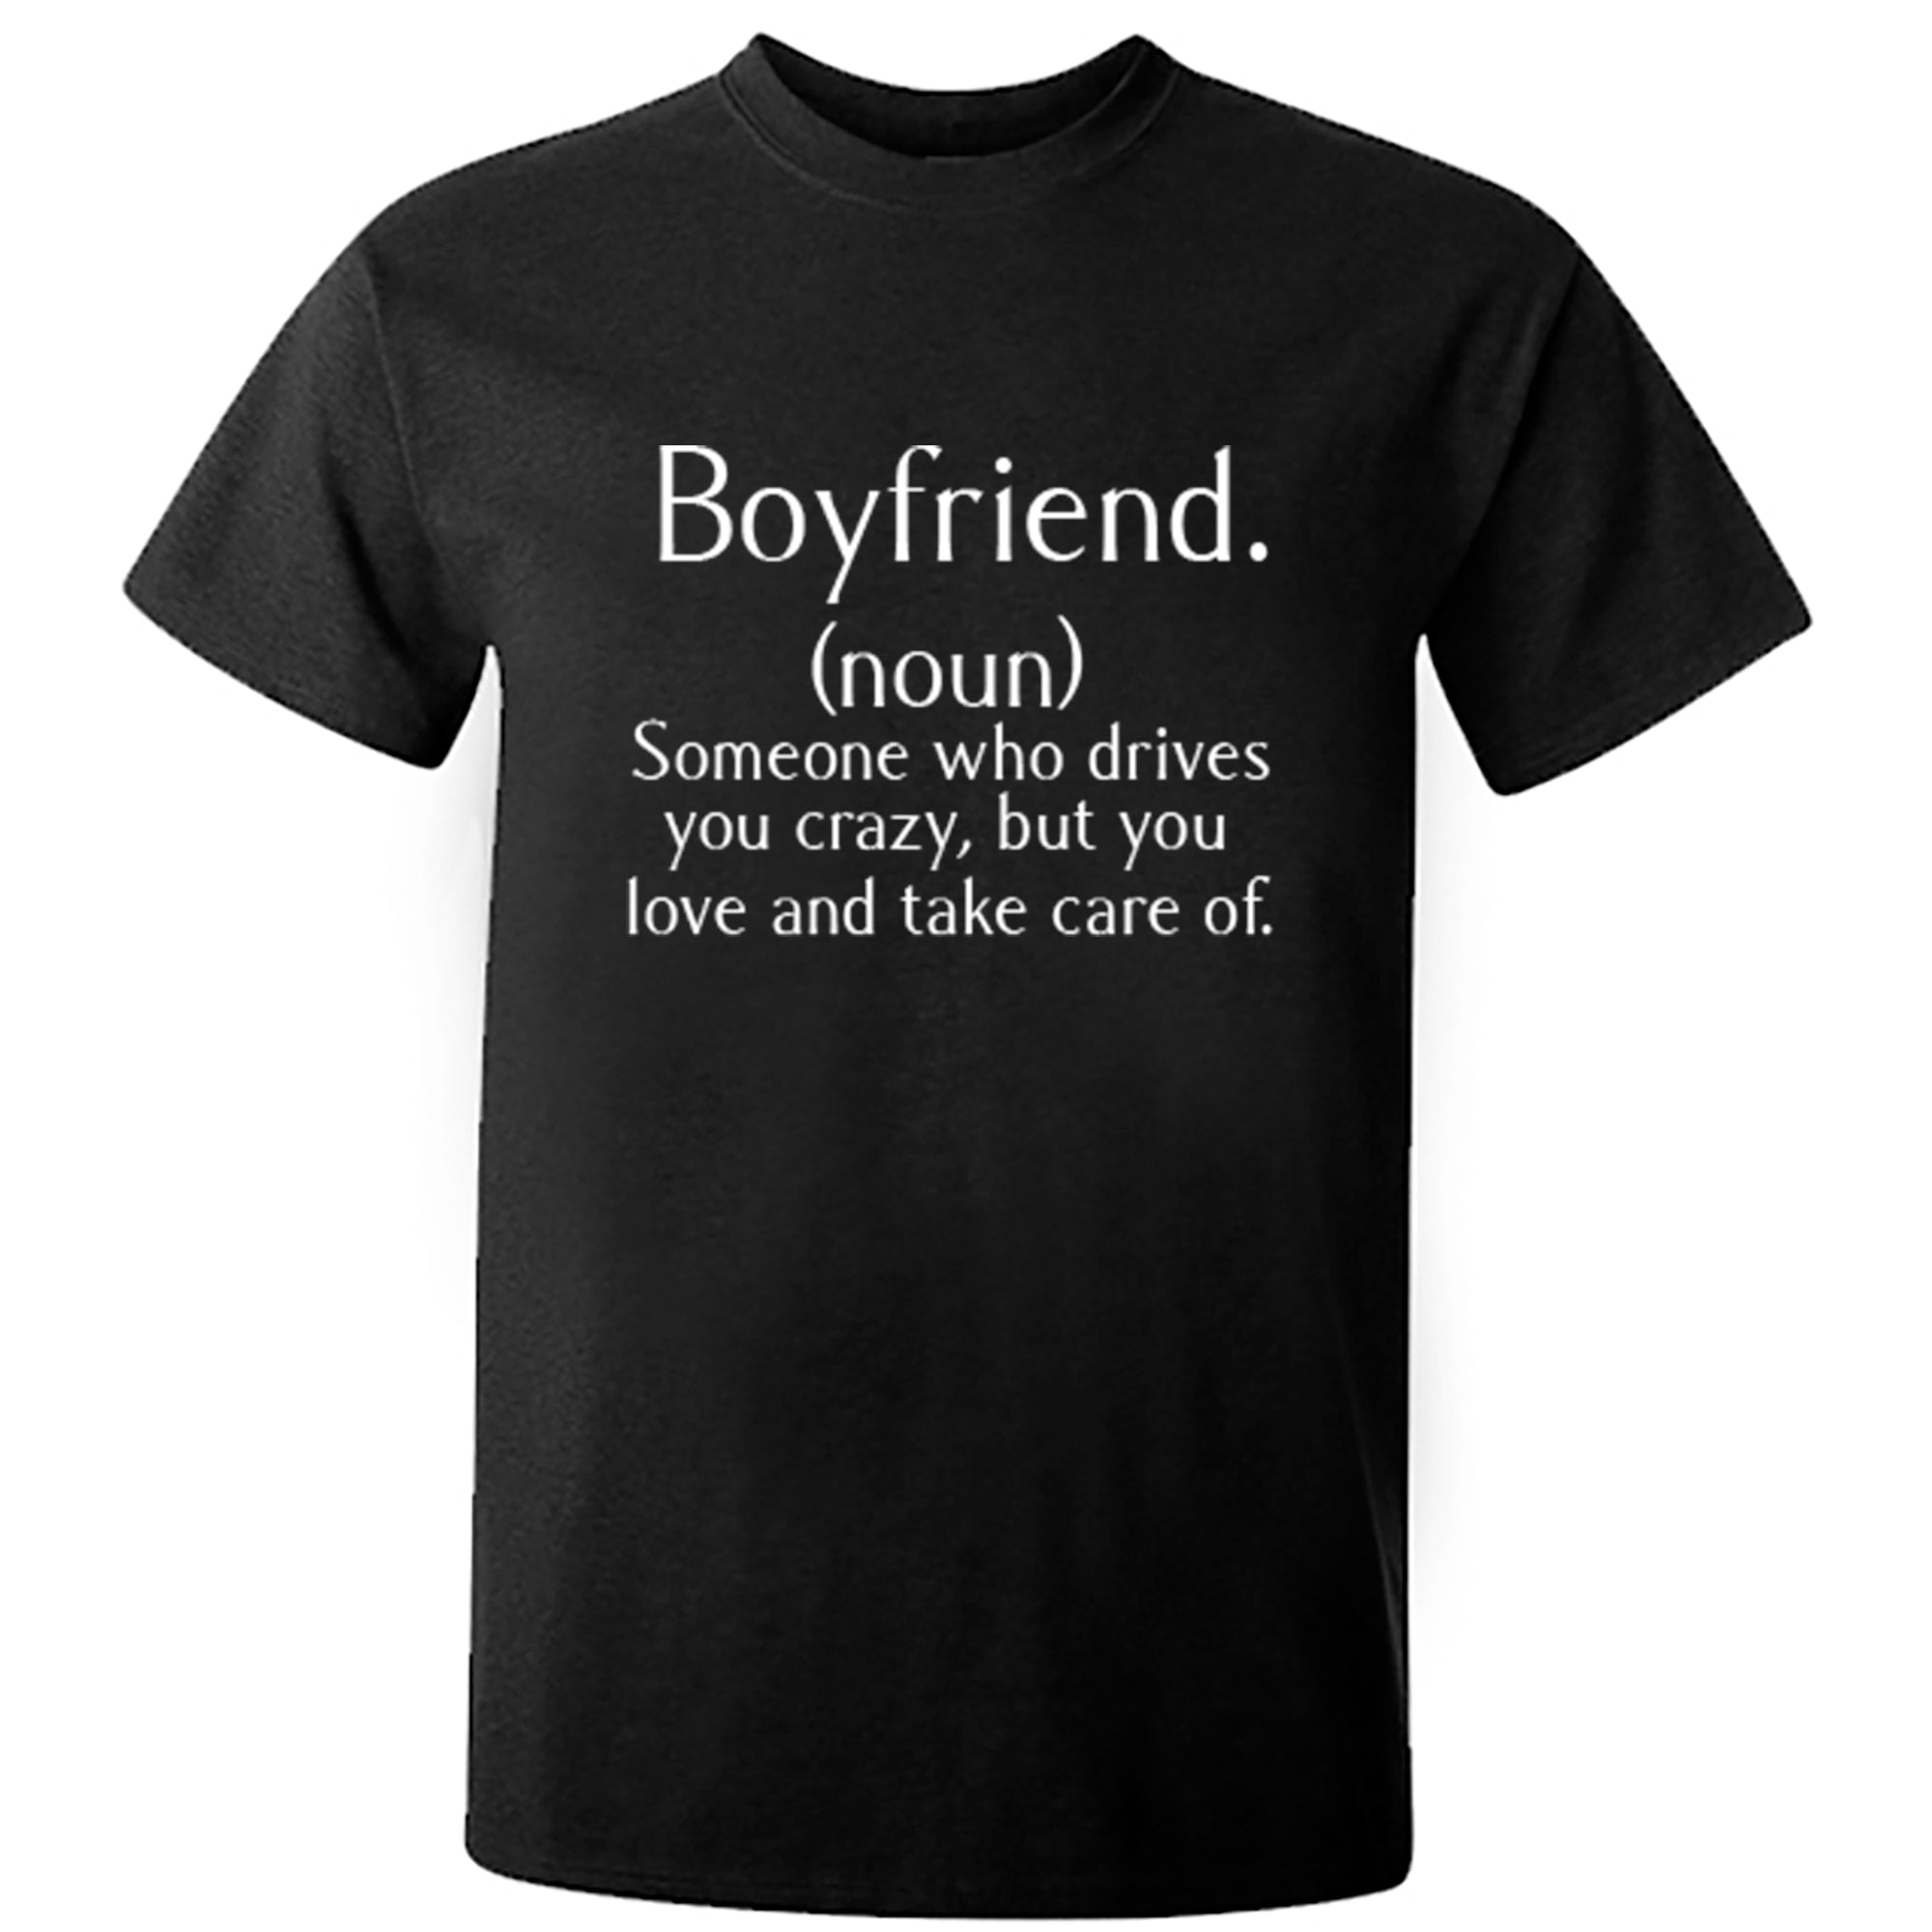 The Definition Of A Boyfriend Unisex Fit T-Shirt S0303 - Illustrated Identity Ltd.